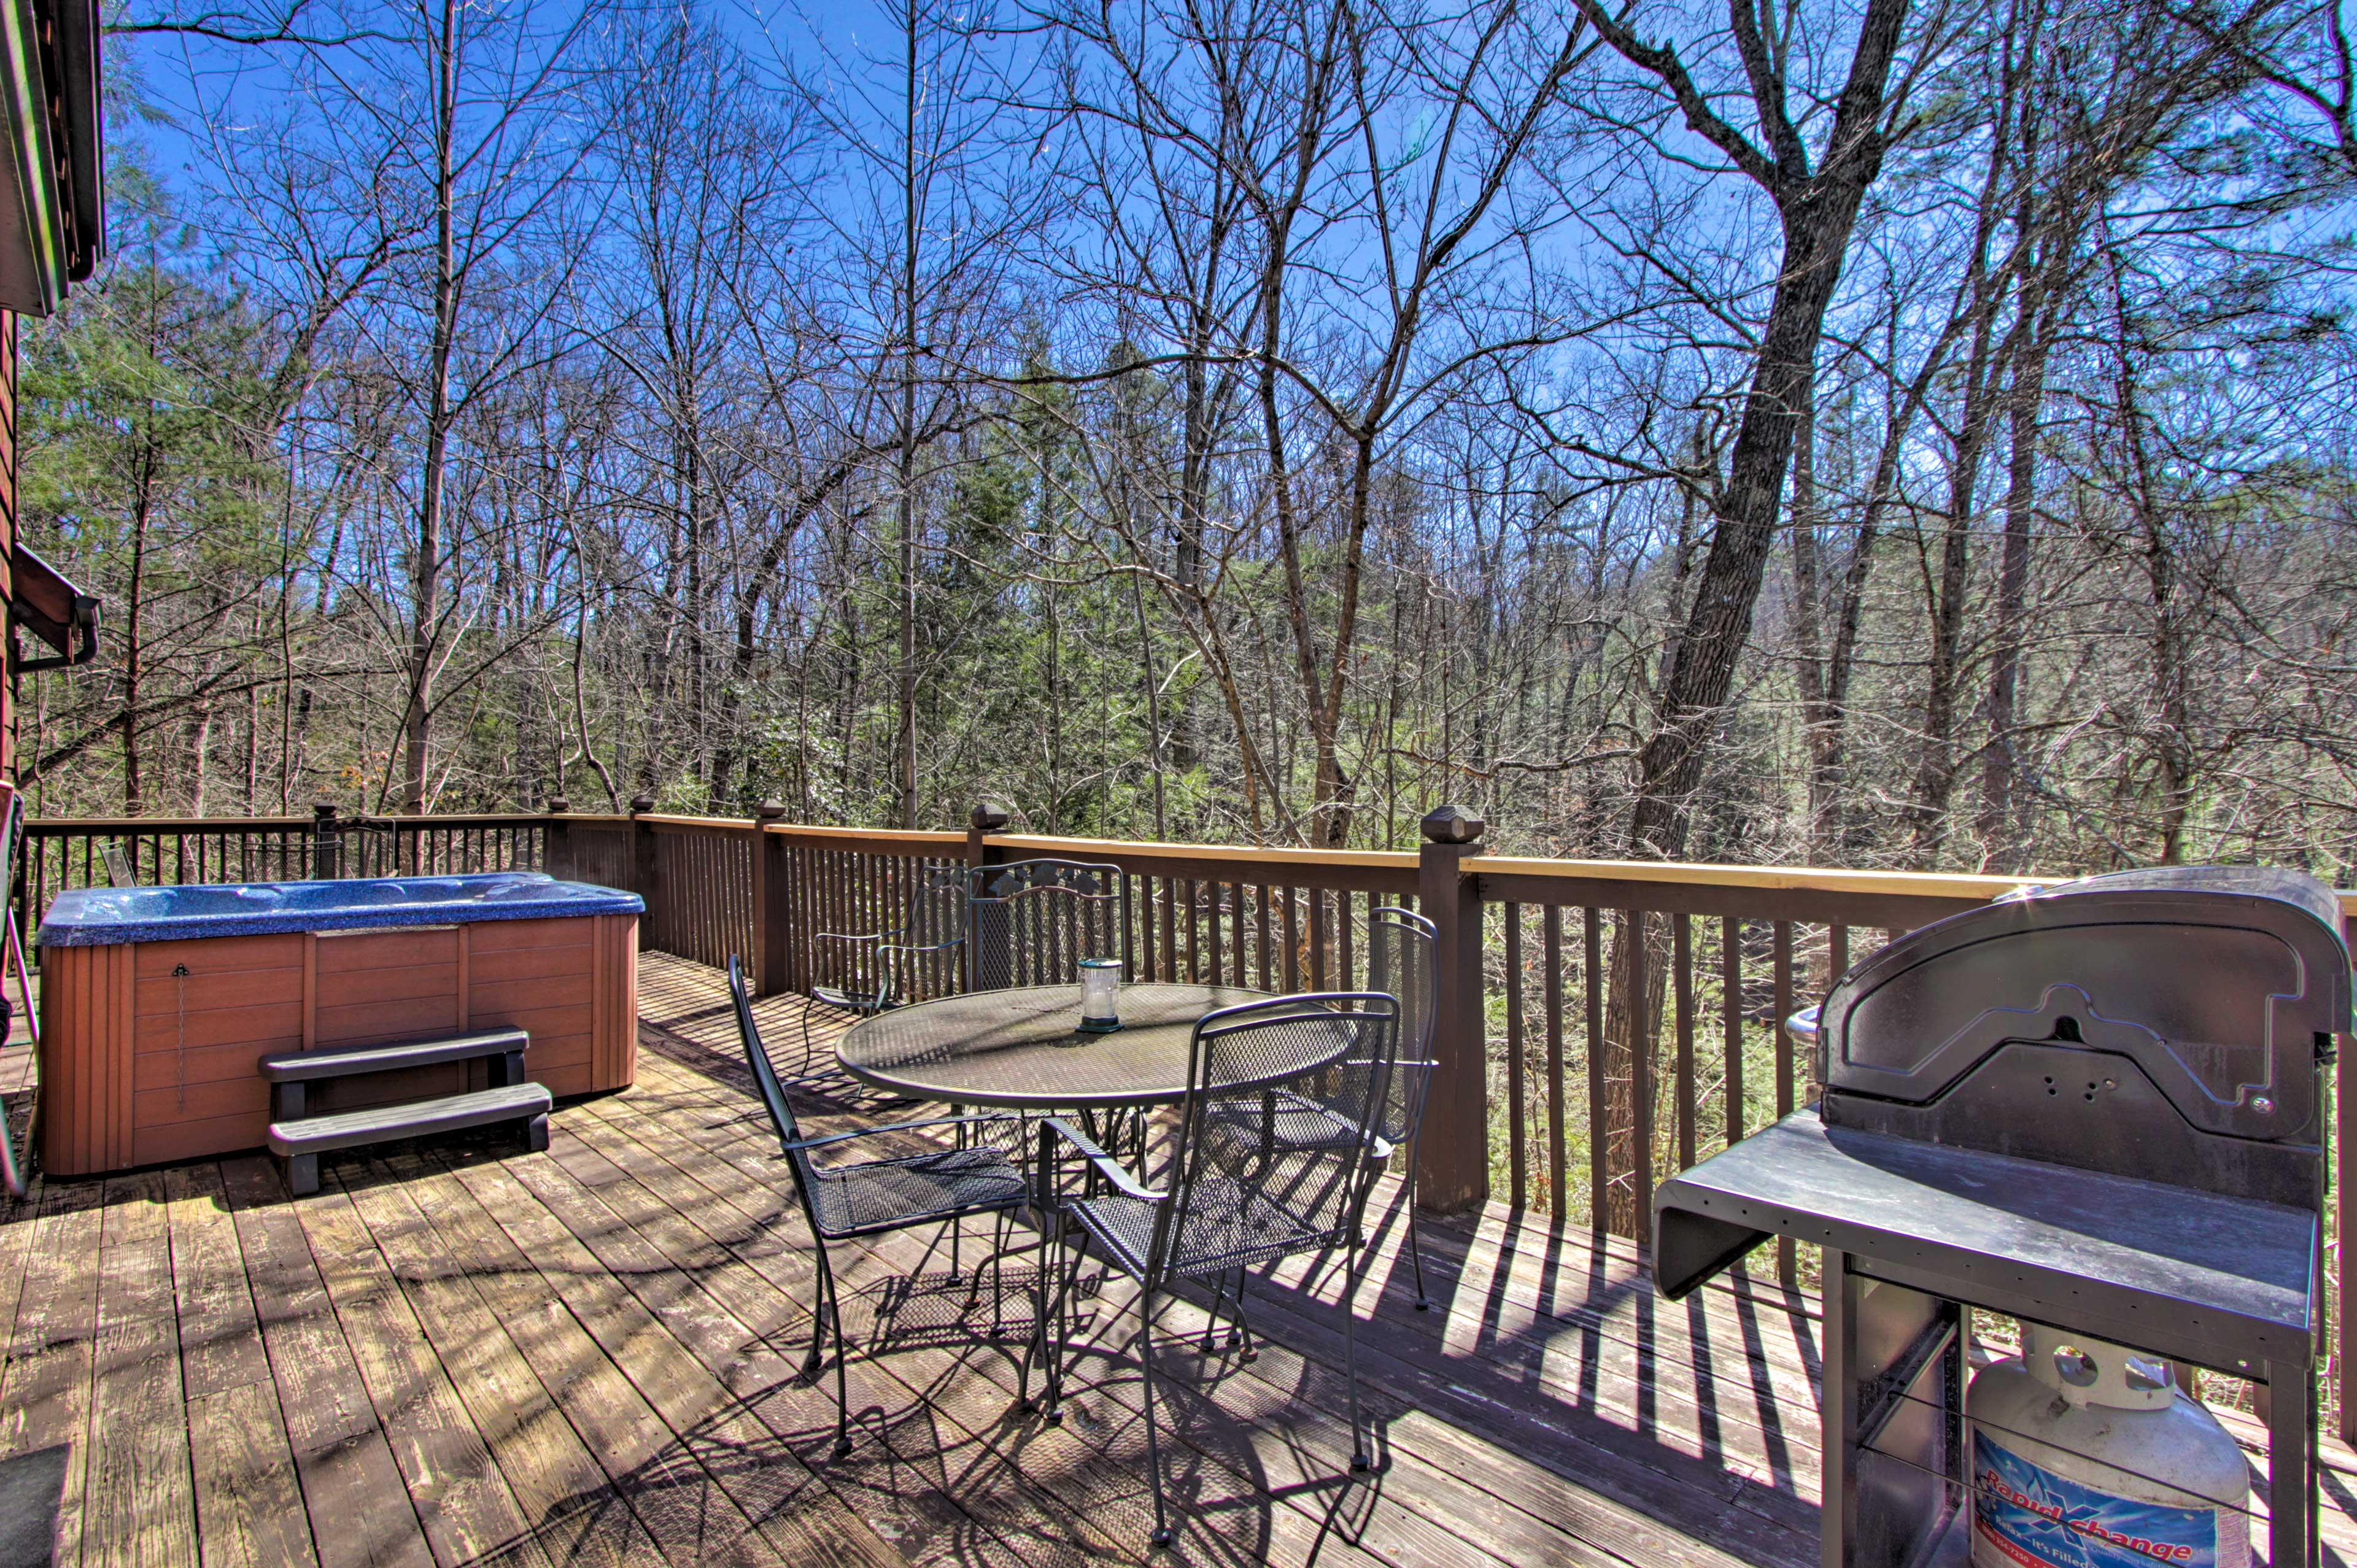 Deck | Hot Tub | Gas Grill | Fire Pit